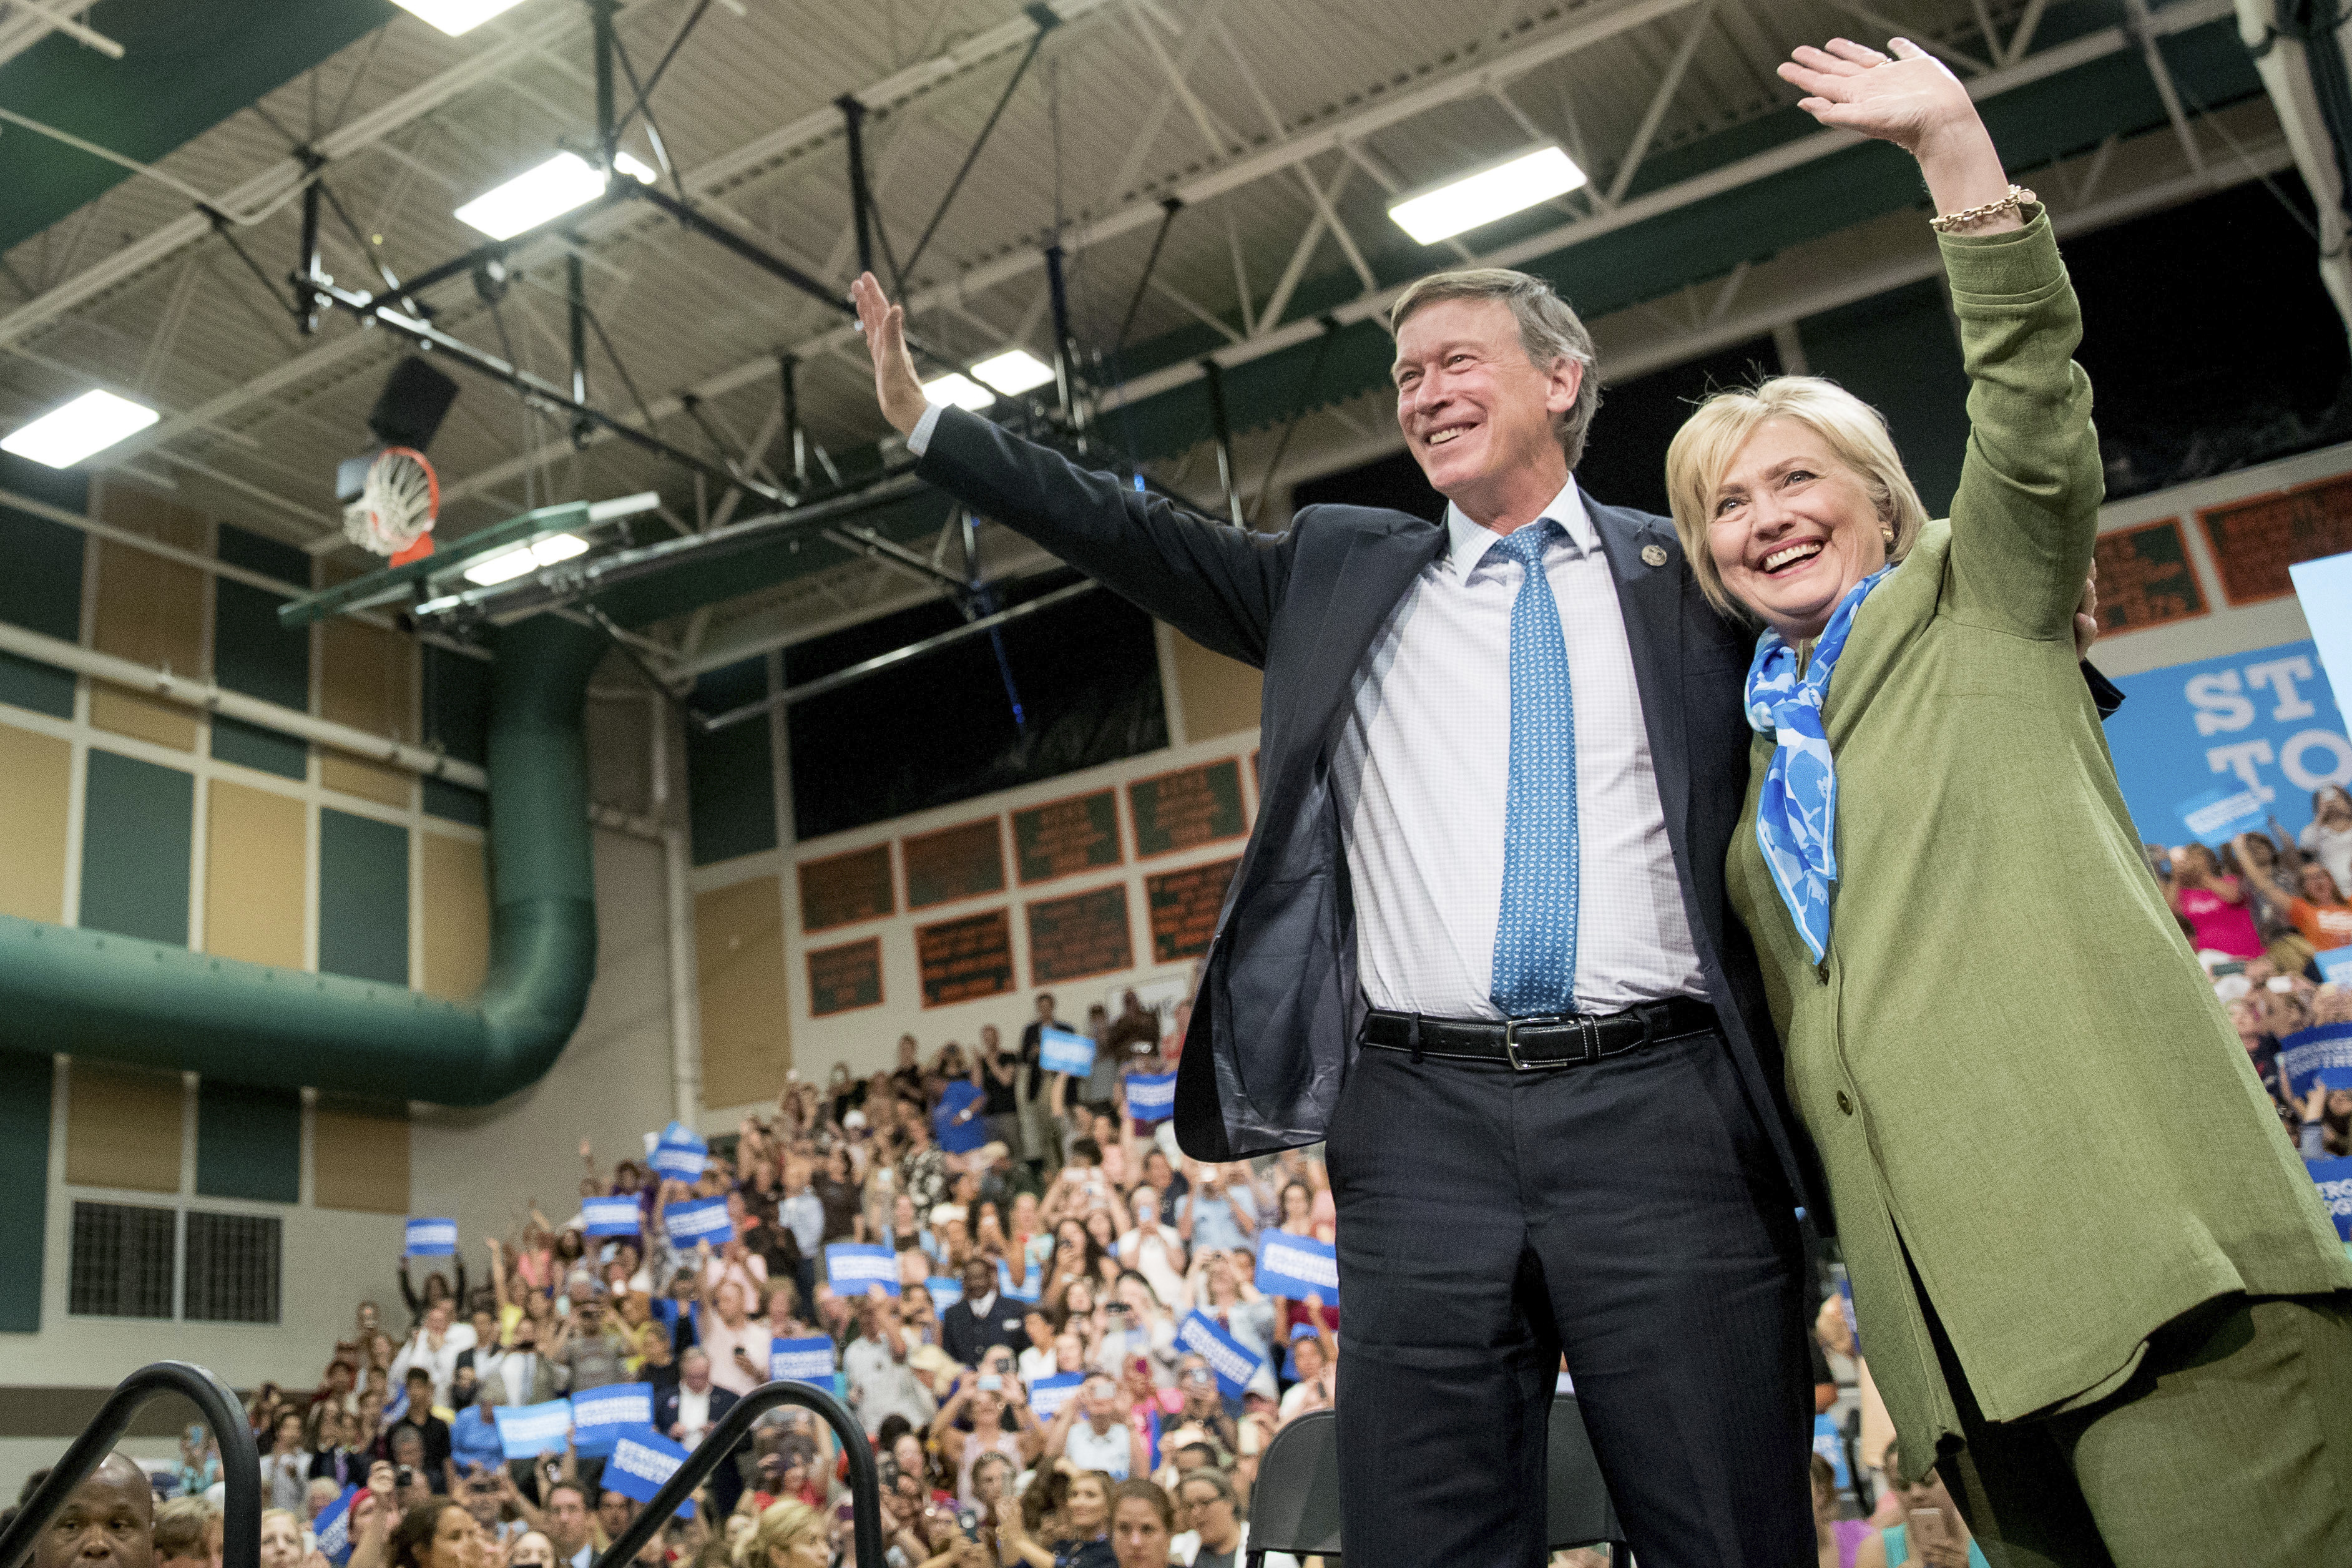 Photo: Clinton And Hickenlooper In Denver Aug. 3 2016